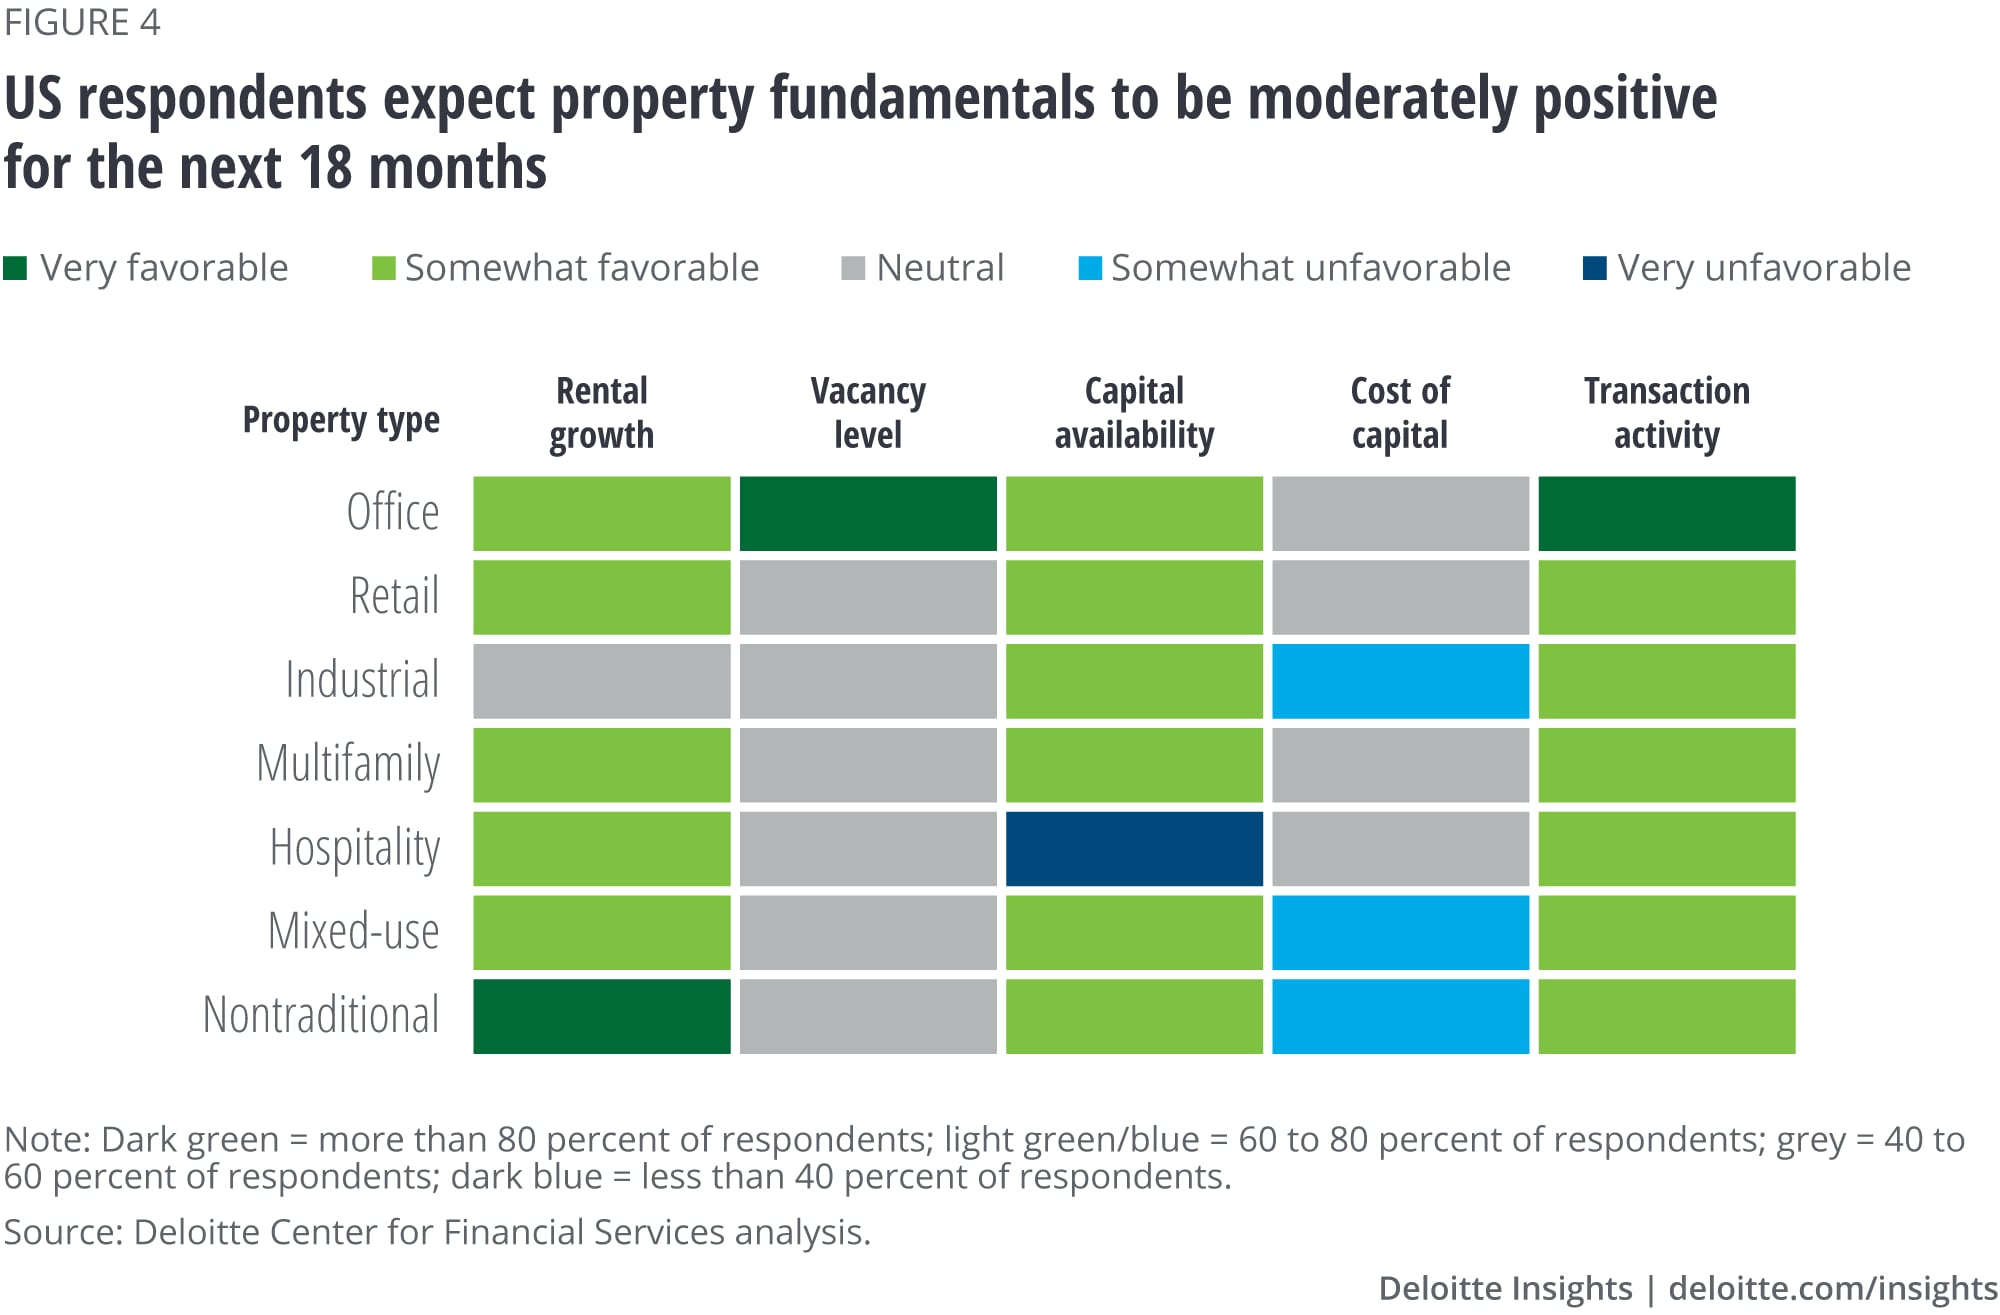 US respondents expect property fundamentals to be moderately positive for the next 18 months